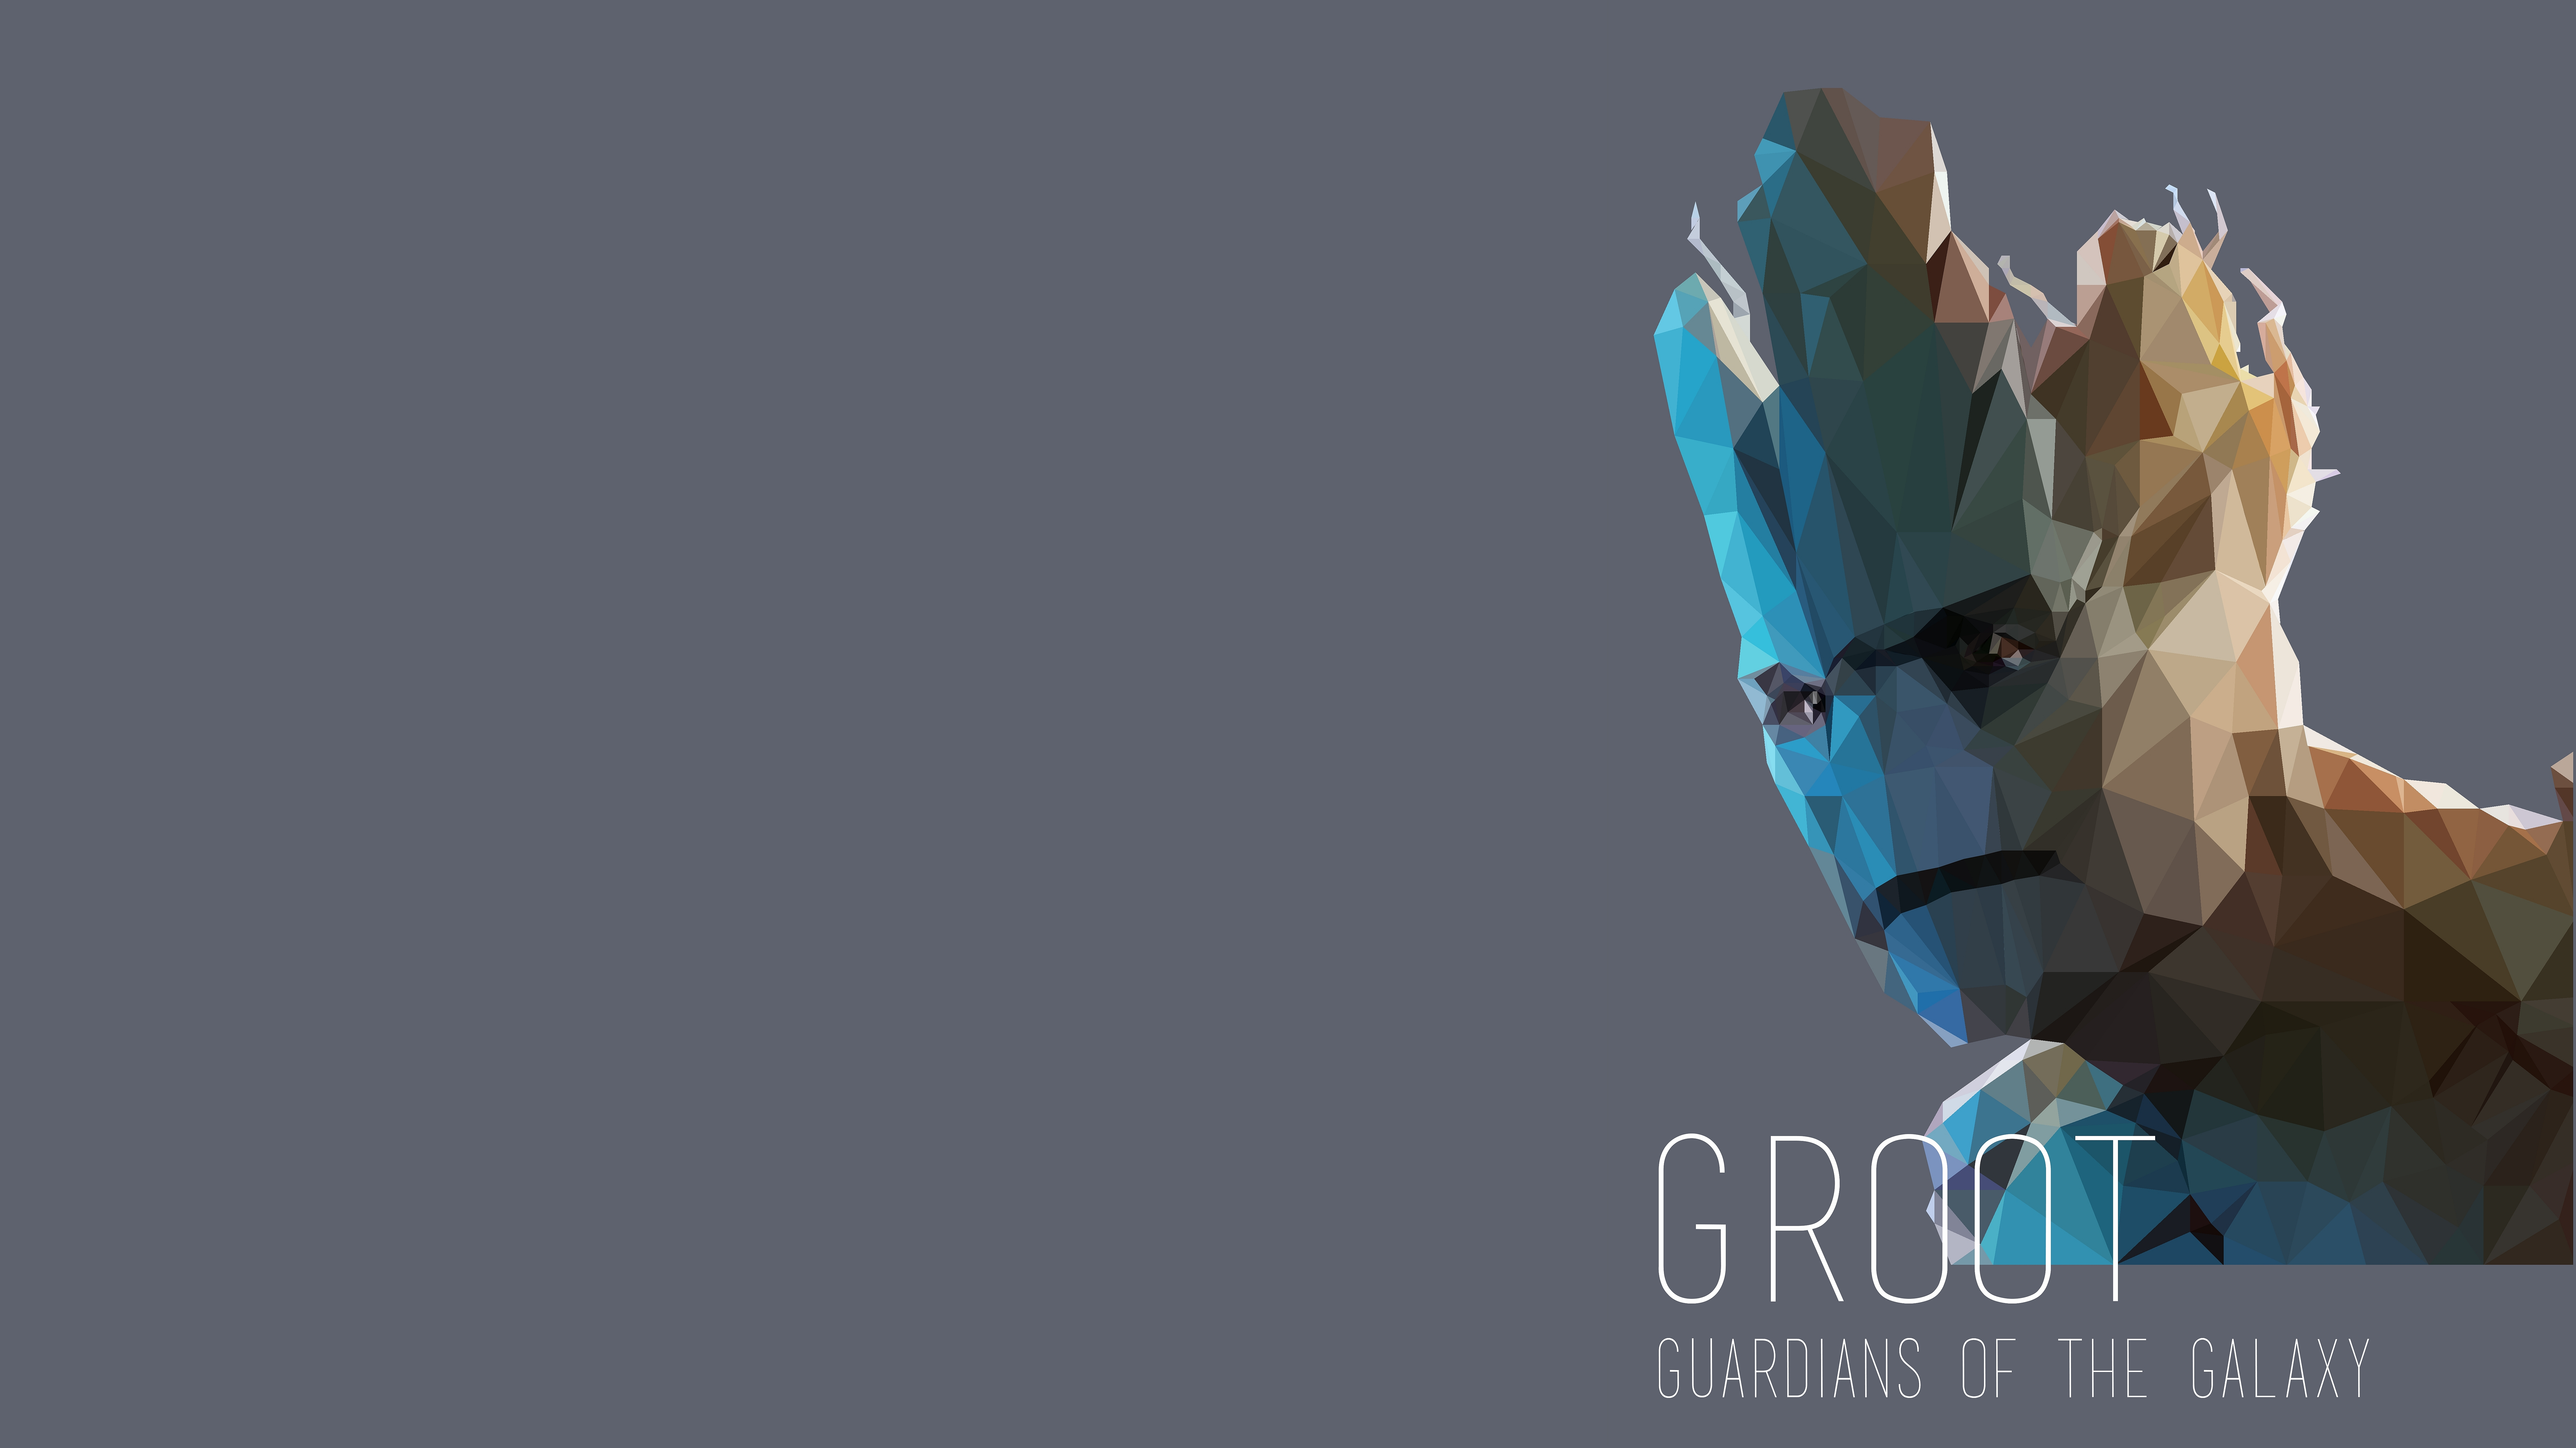 52 4k Ultra Hd Groot Wallpapers Background Images Wallpaper Abyss